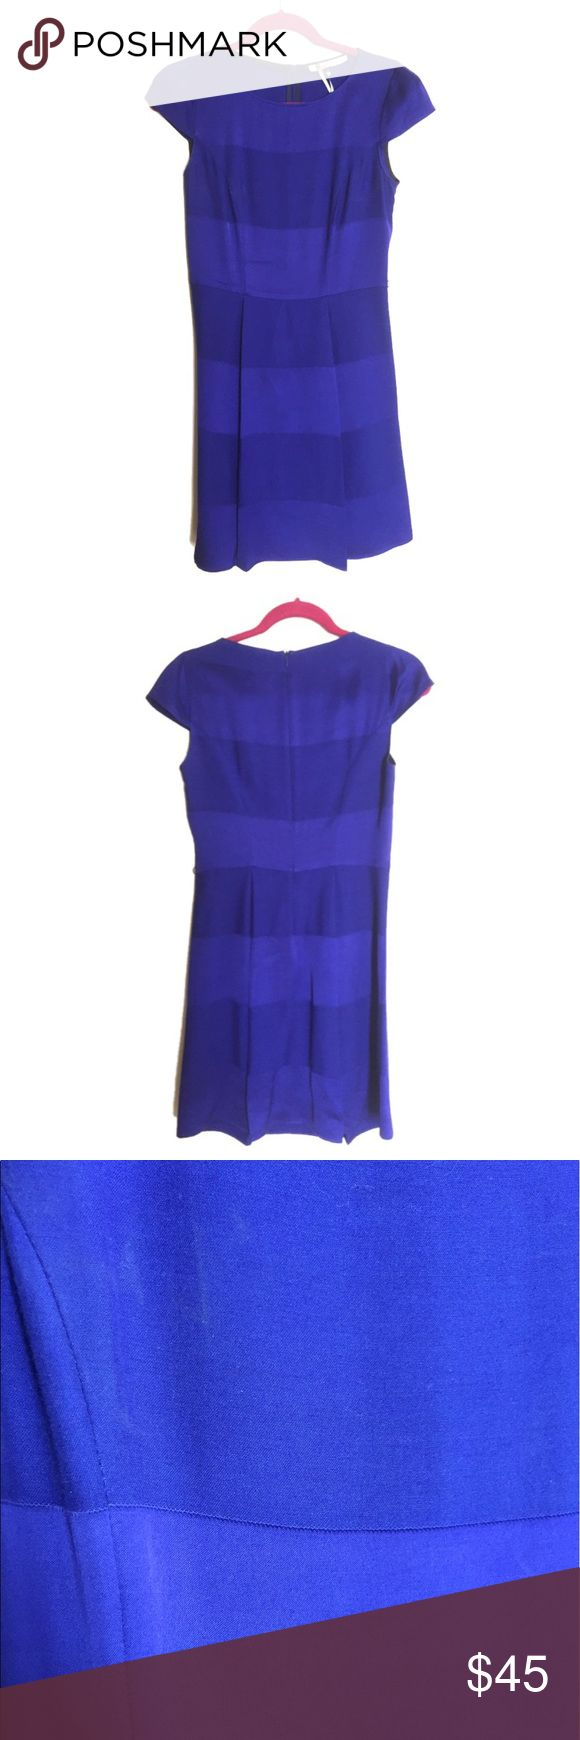 Gorgeous blue semi formal dress Gorgeous blue semi formal dress. Made out of wool, viscose, cotton and polyester. Imported from Spain. Never used but has a few stains from storage shown in picture. Non smoking home. No tears. No holes. No odors. Super classy! 👗 Dresses